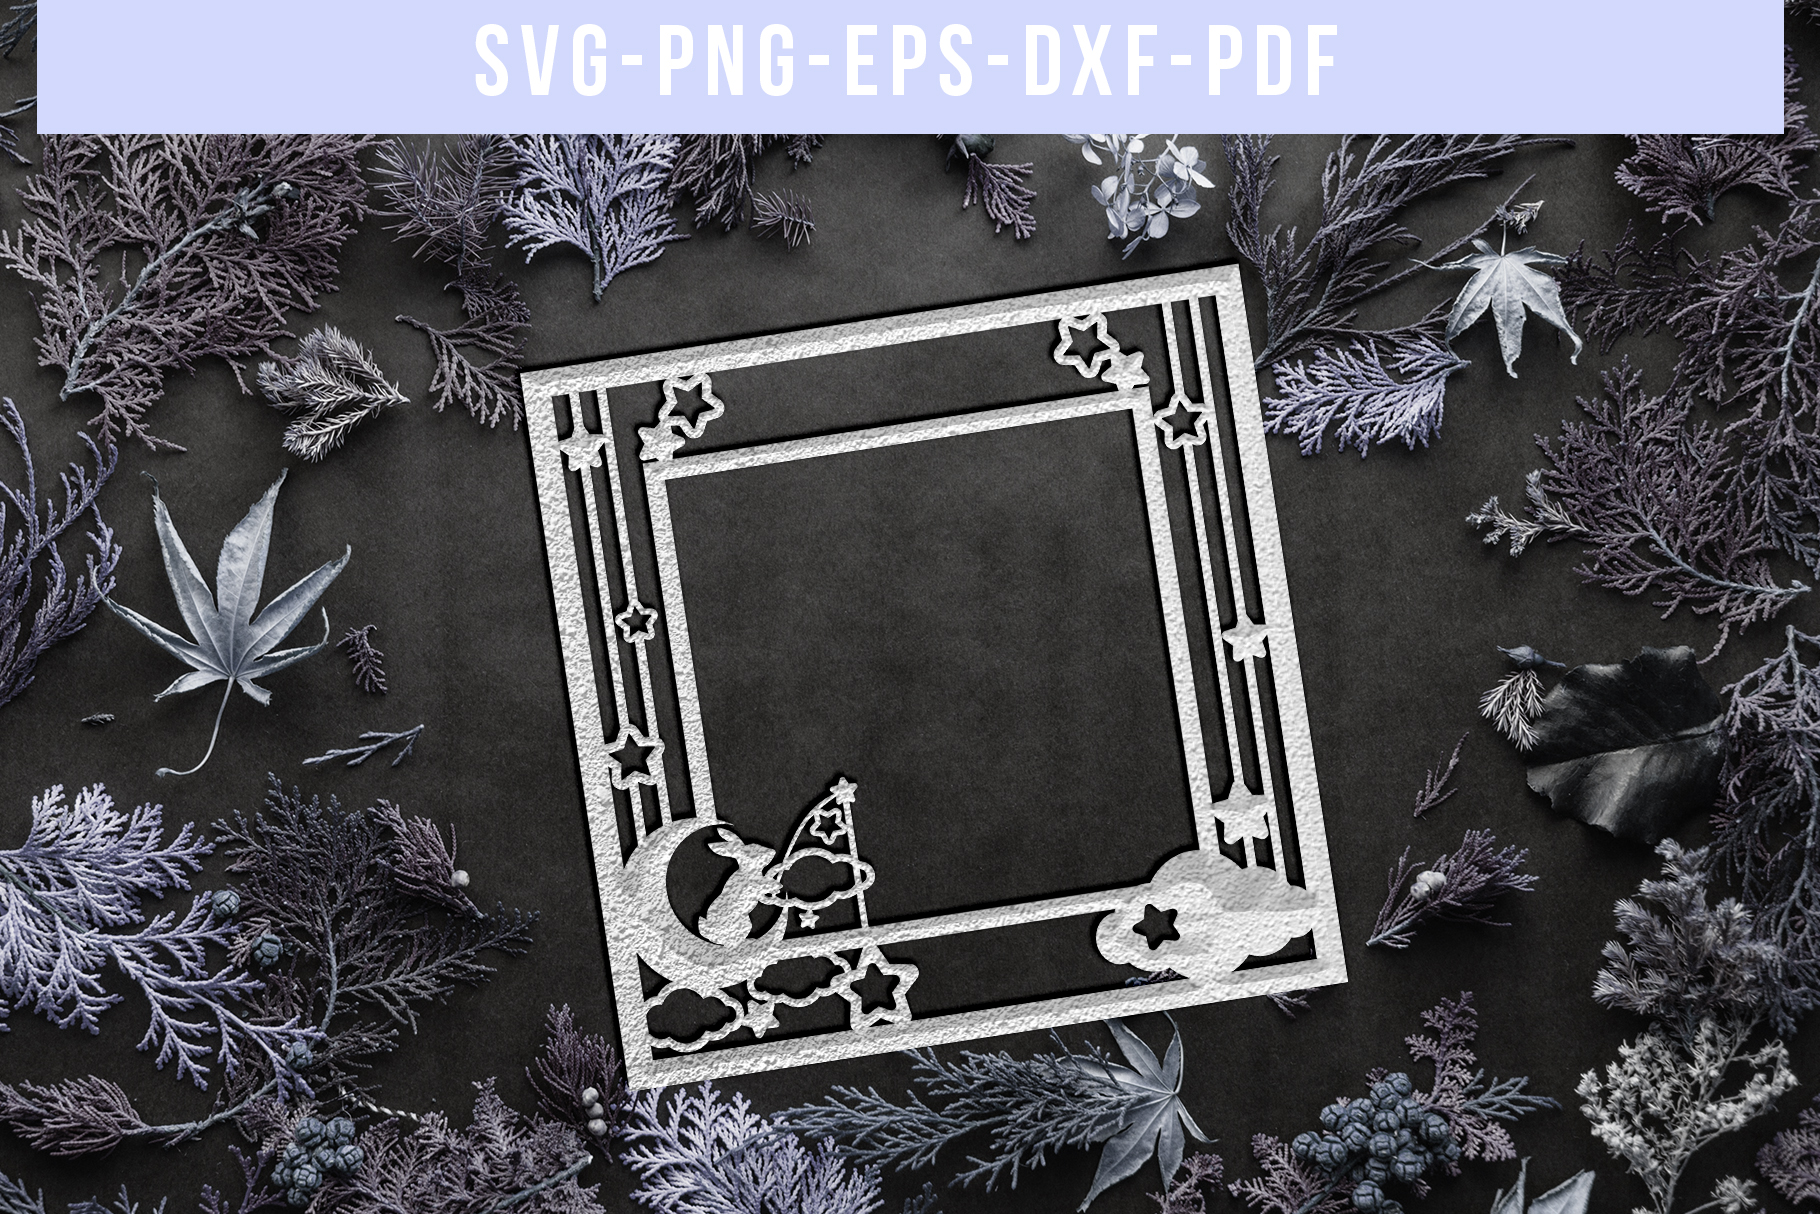 Square Photo Frame Papercut Template, Baby Cut File SVG, DXF example image 5